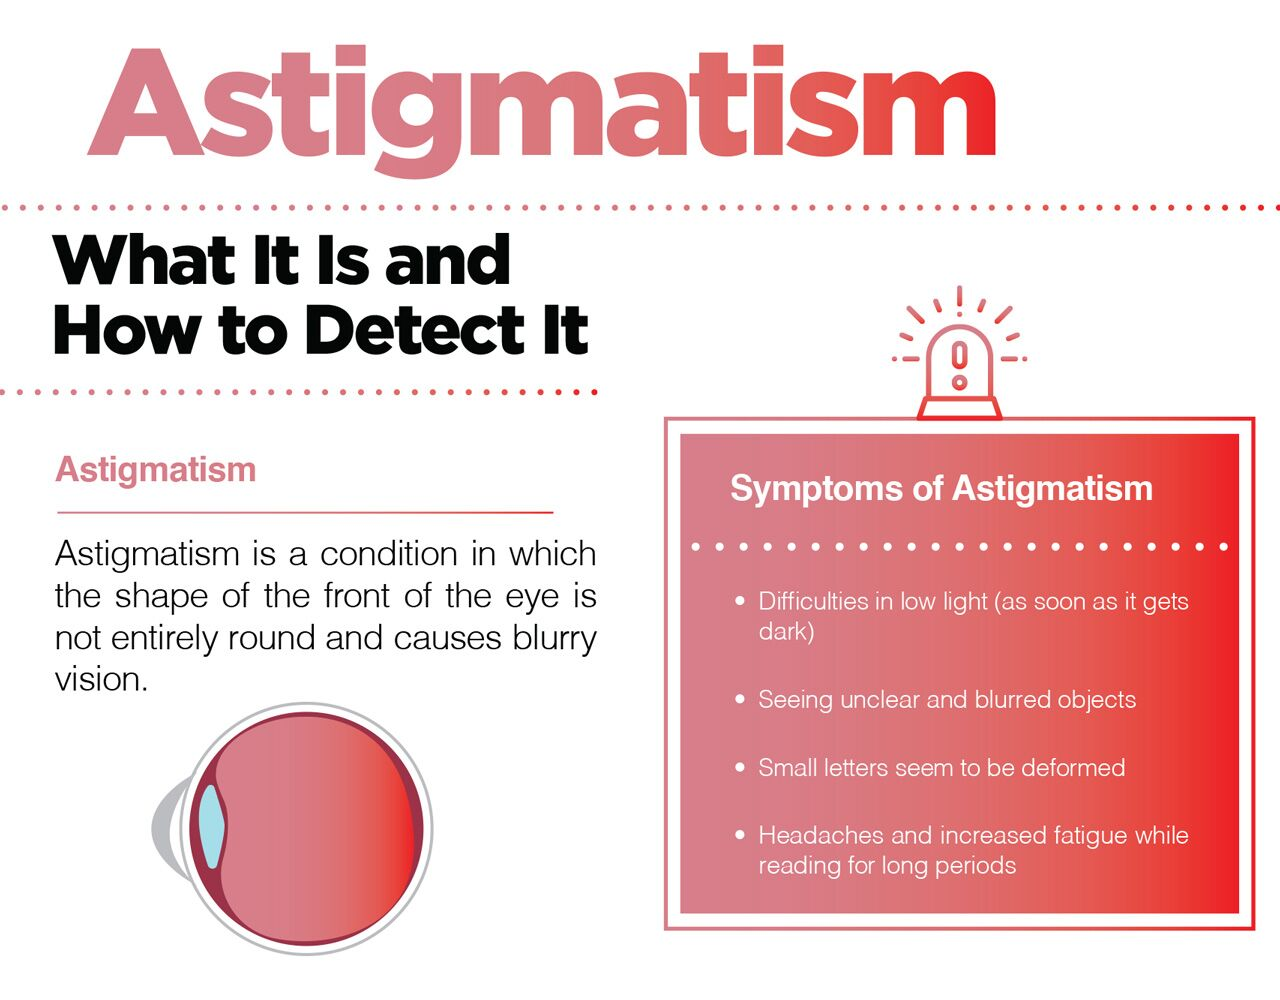 What is astigmatism and how to detect it